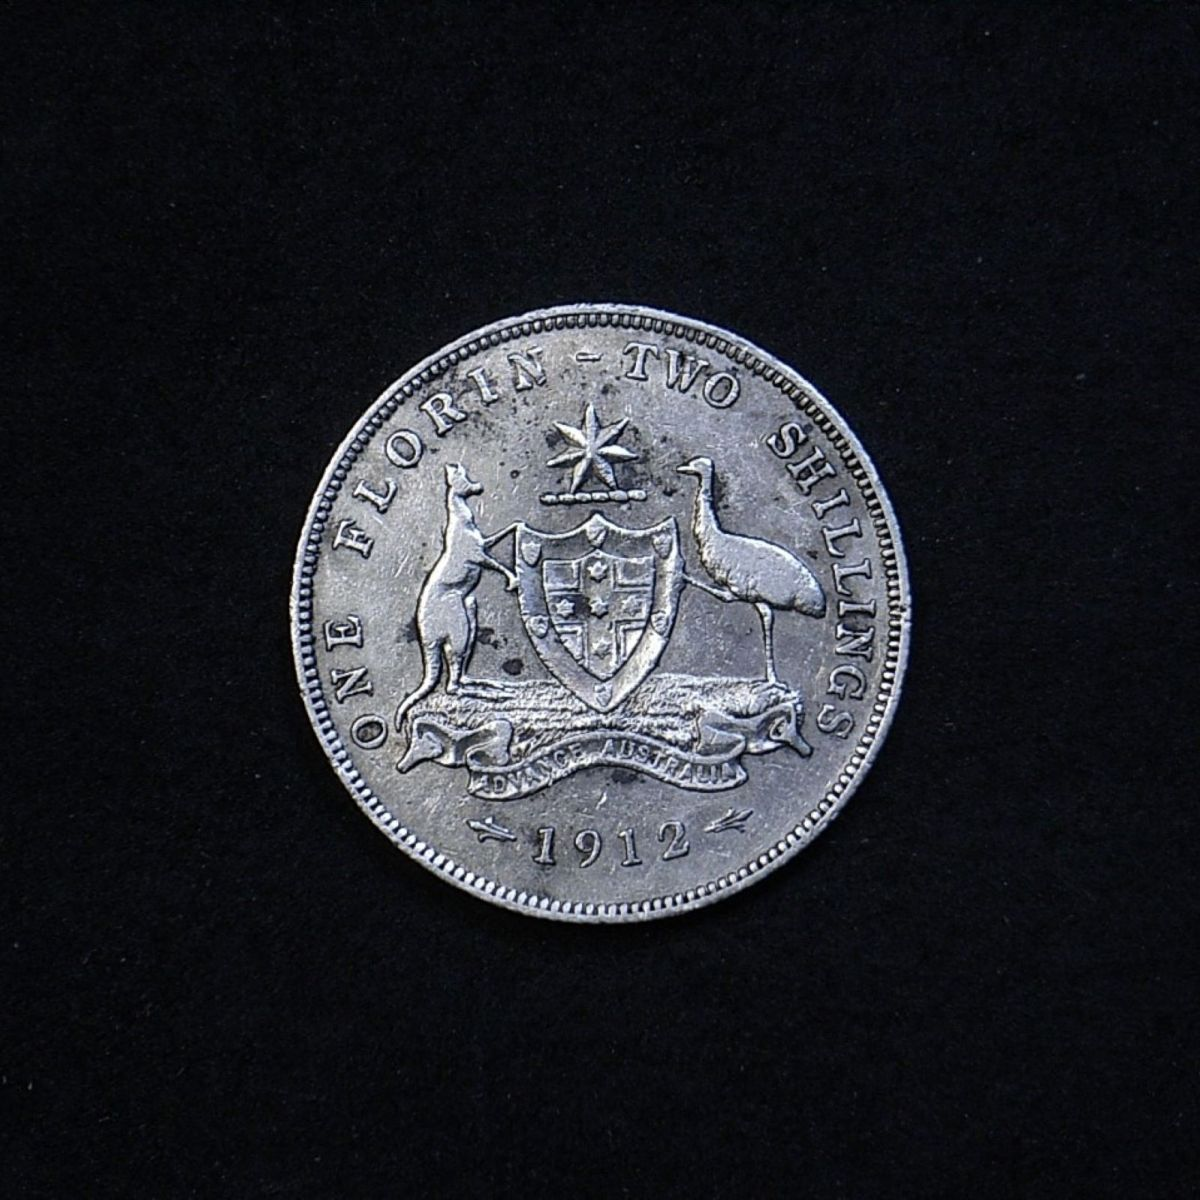 Aus Florin 1912 reverse showing overall appearance